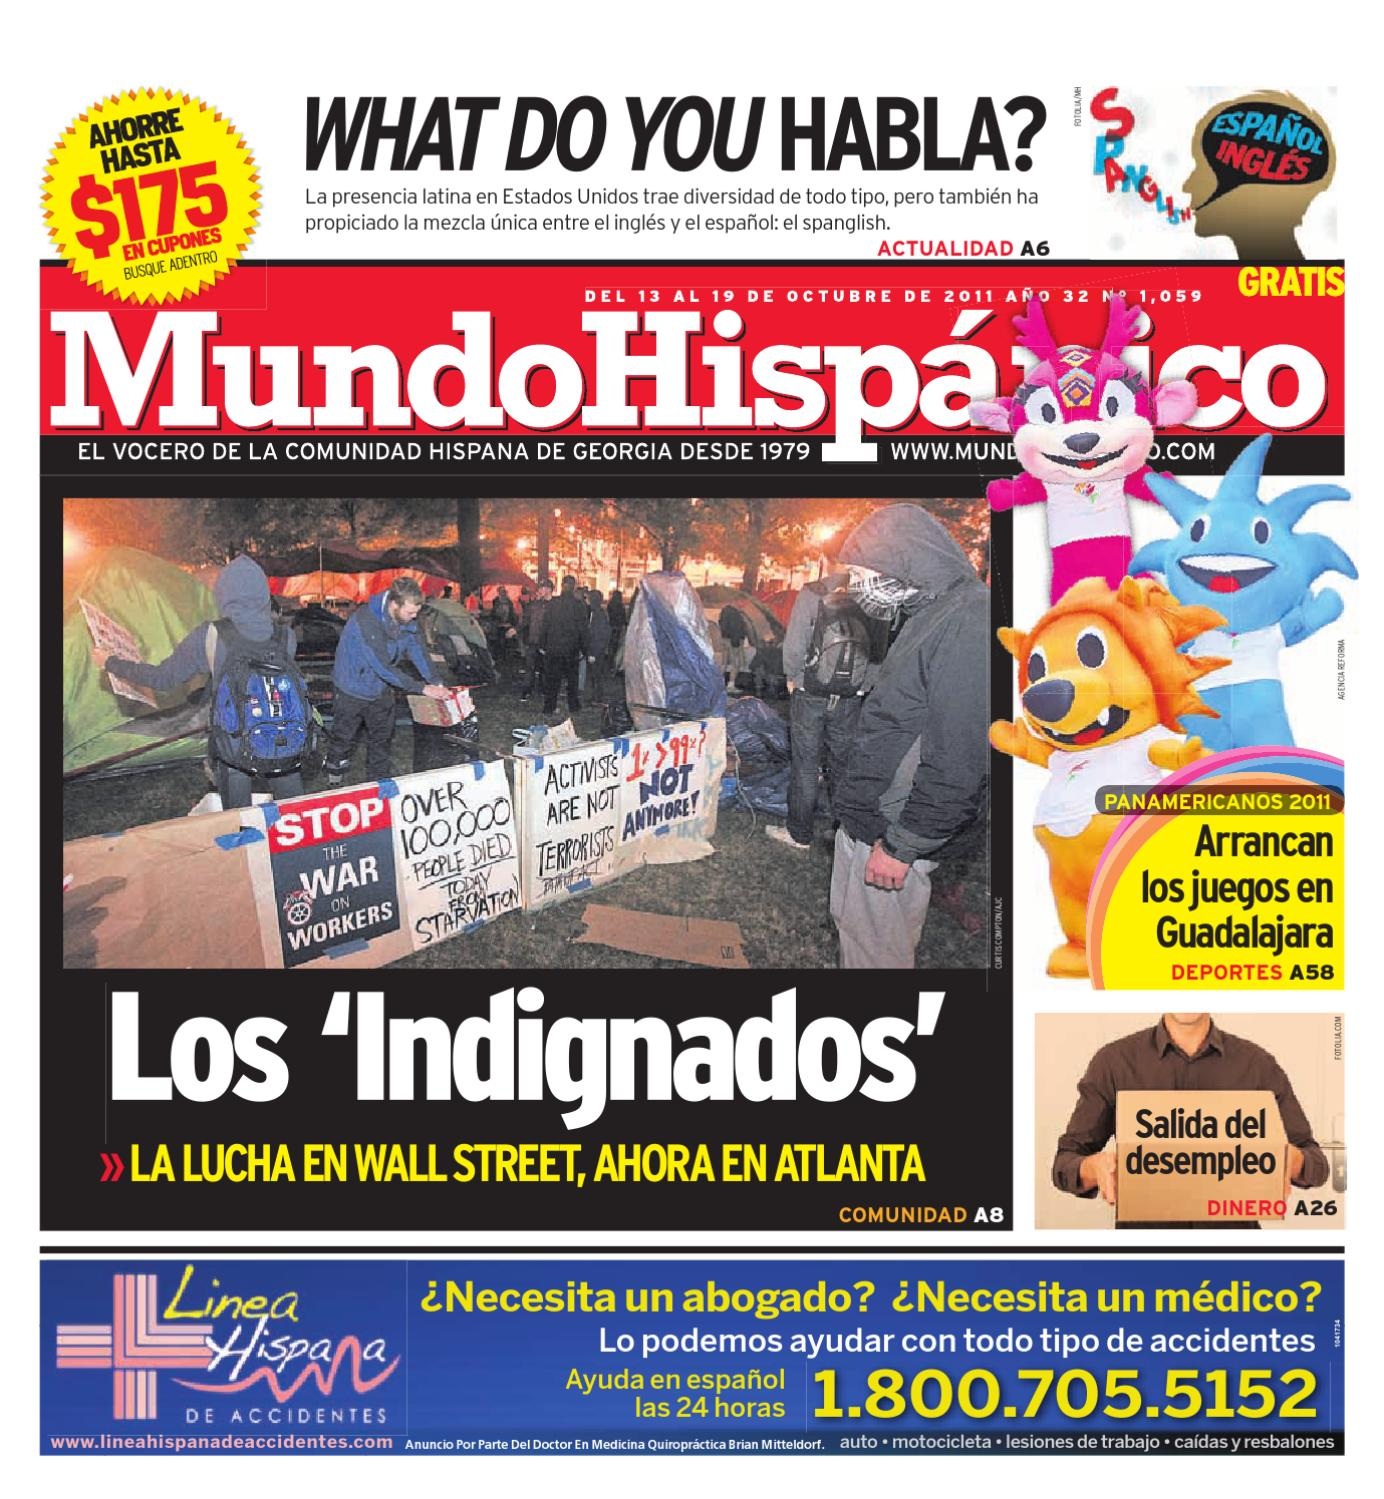 Mundo Hispanico 10-13-11 by MUNDO HISPANICO - issuu